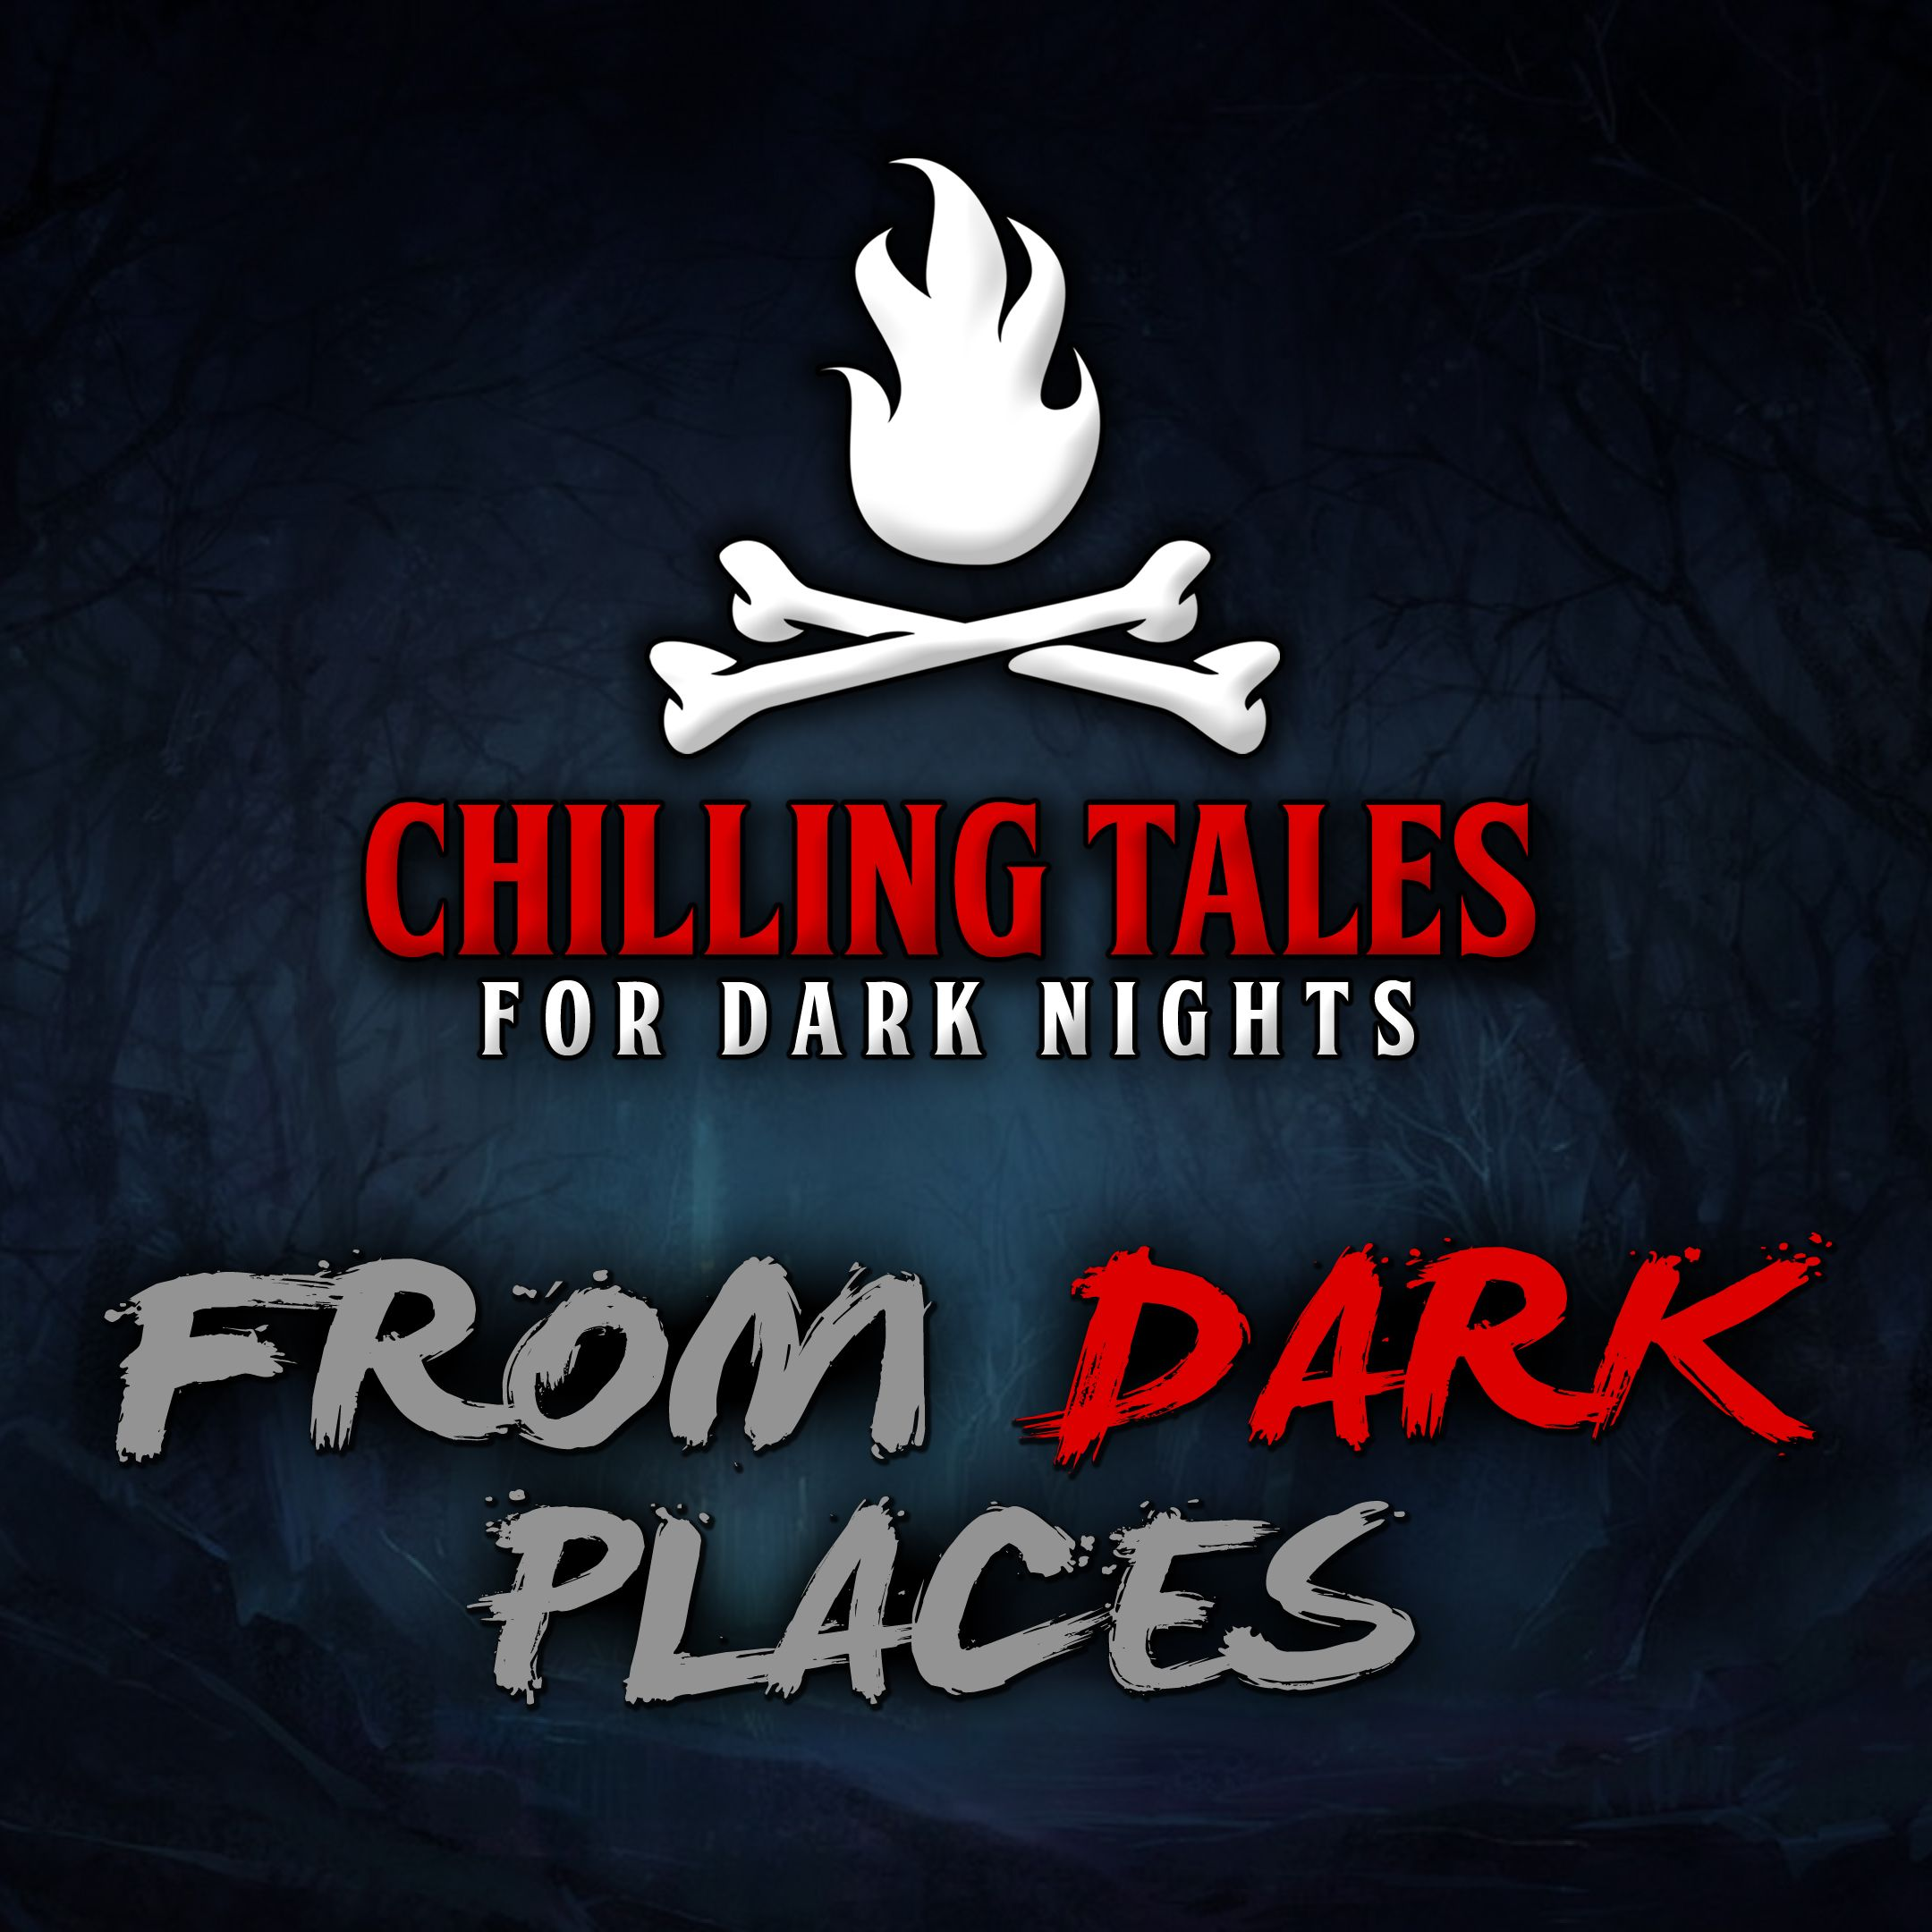 68: From Dark Places – Chilling Tales for Dark Nights